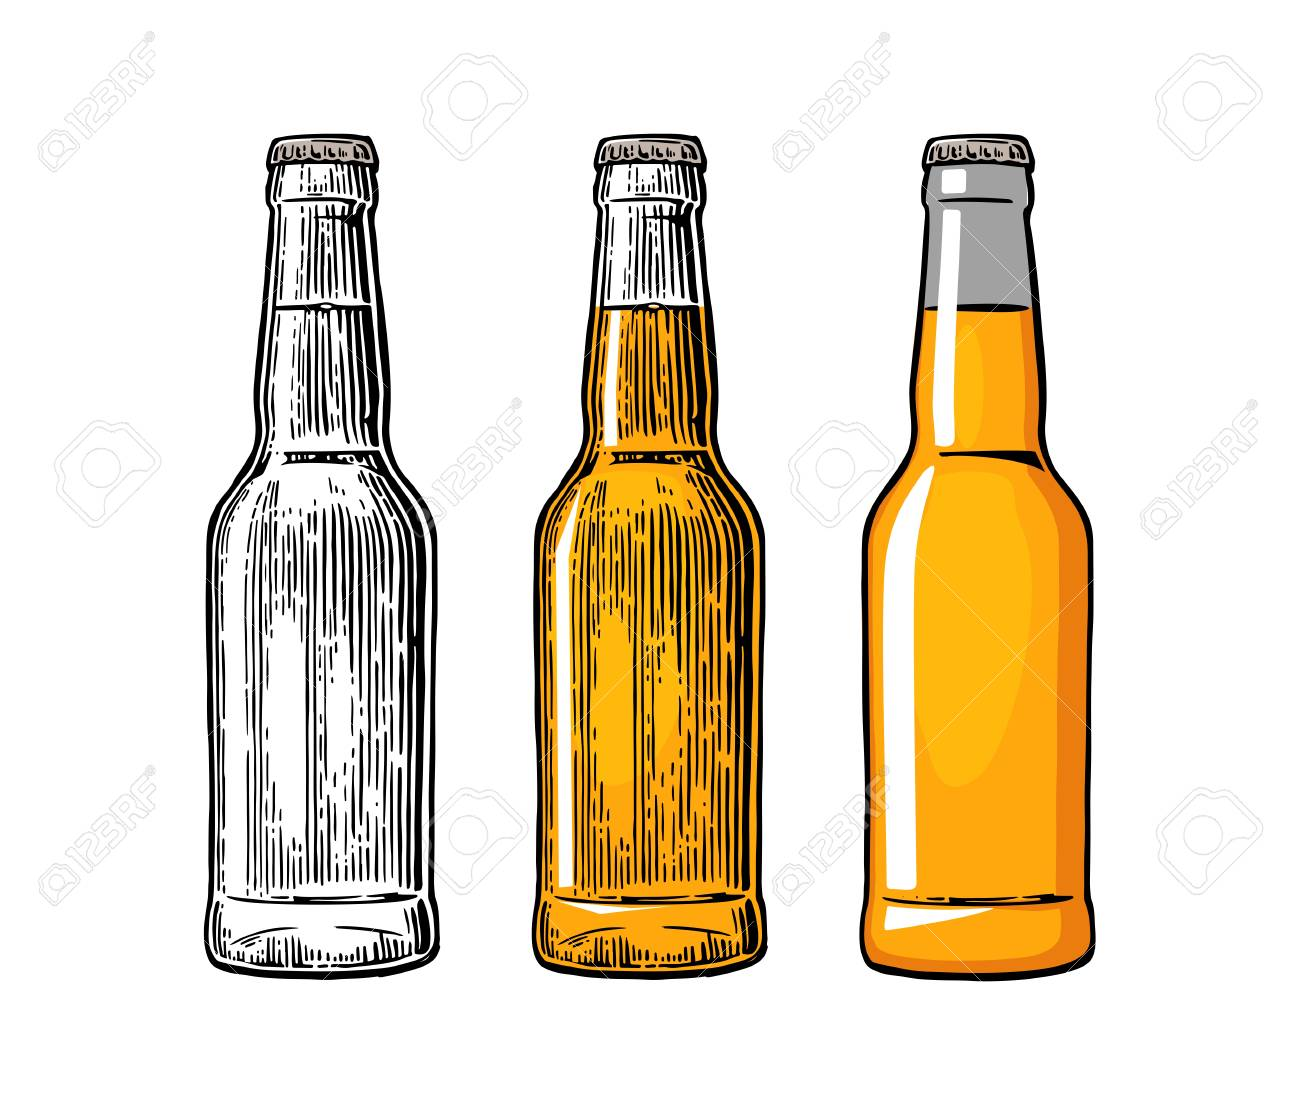 Beer bottle. Drawing in three graphic styles. Color vintage engraving and flat vector illustration. Isolated on white background. For web, poster and invitation to party - 62187900